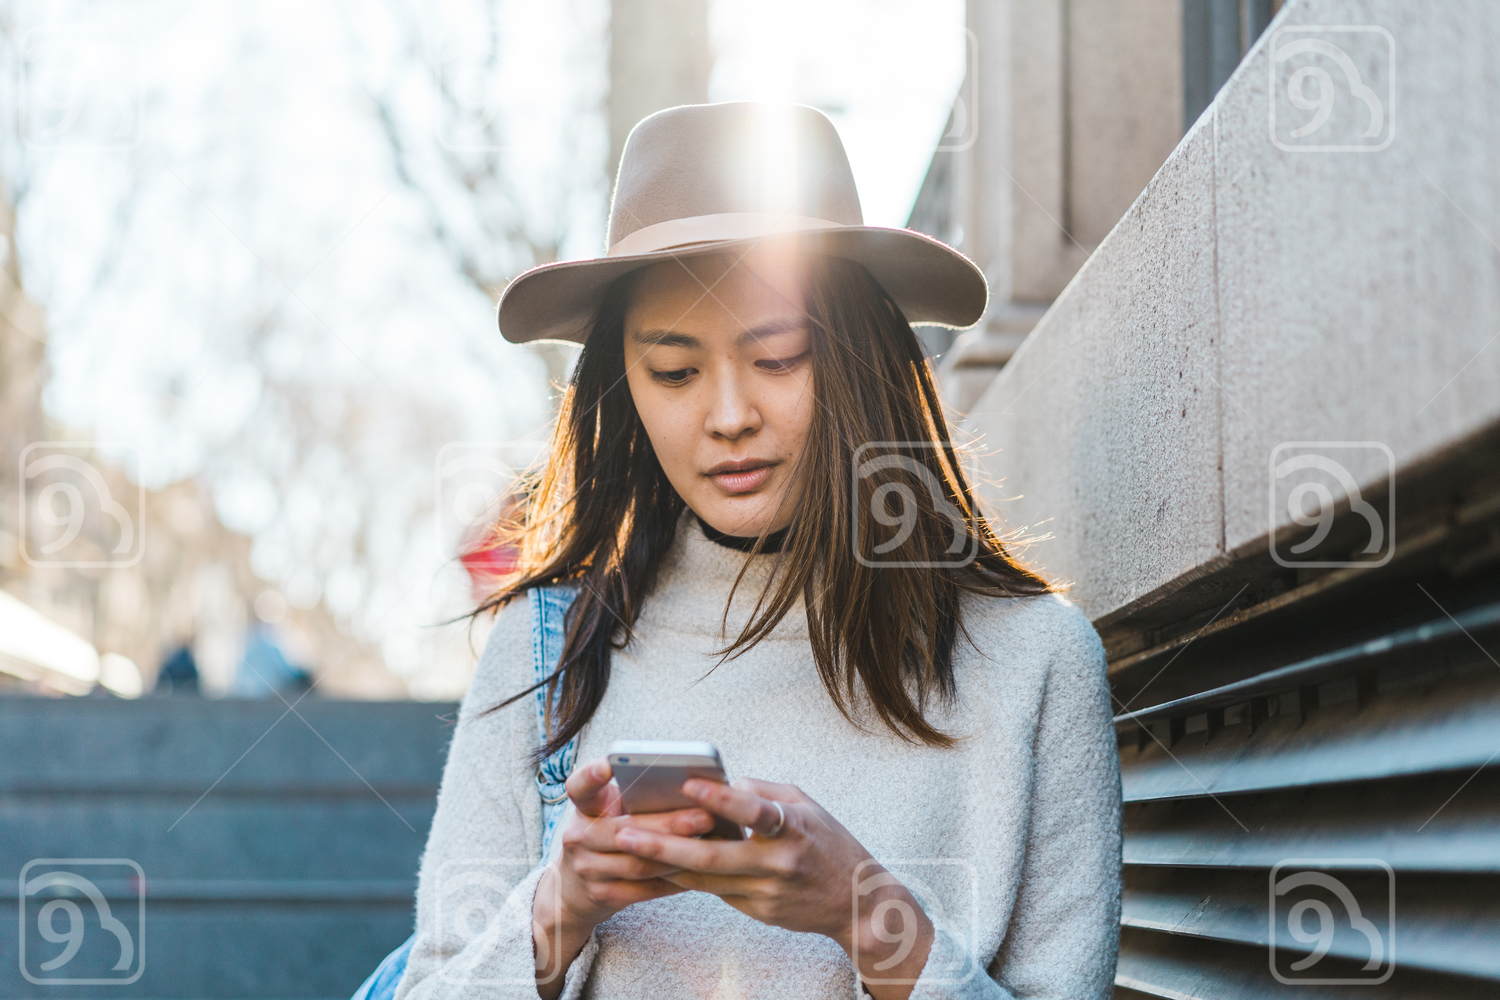 Millennial texting on mobile